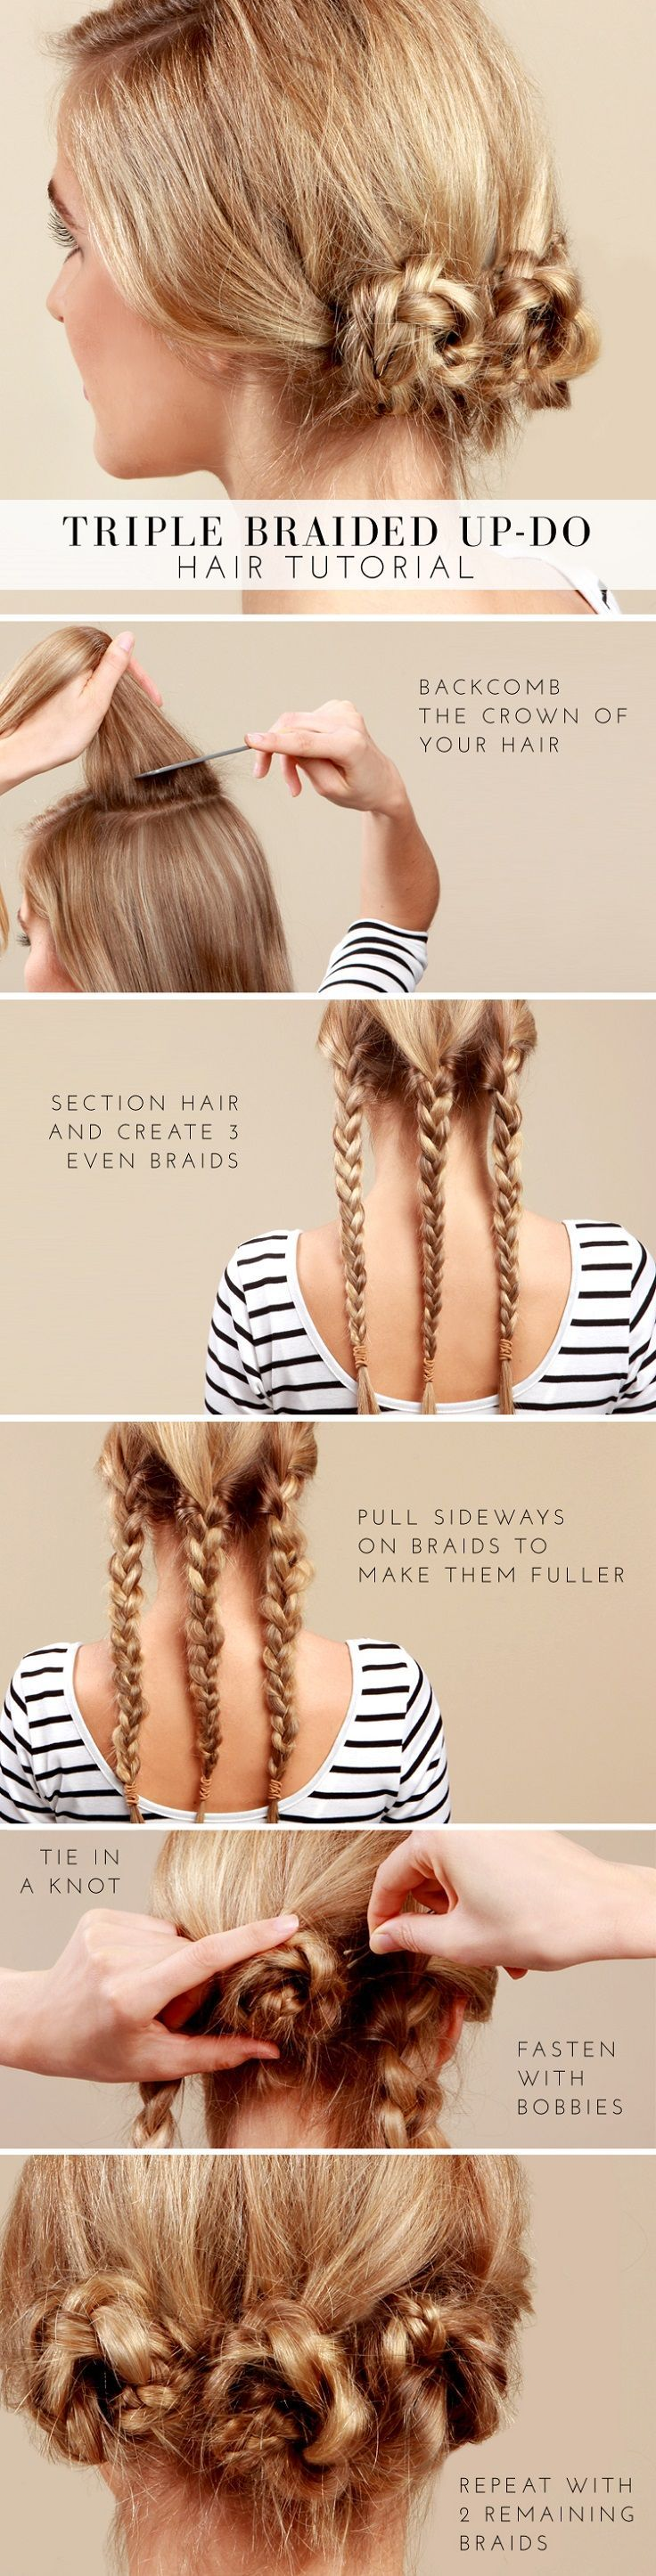 Top 10 Most Popular Hair Tutorials for Spring 2014 -